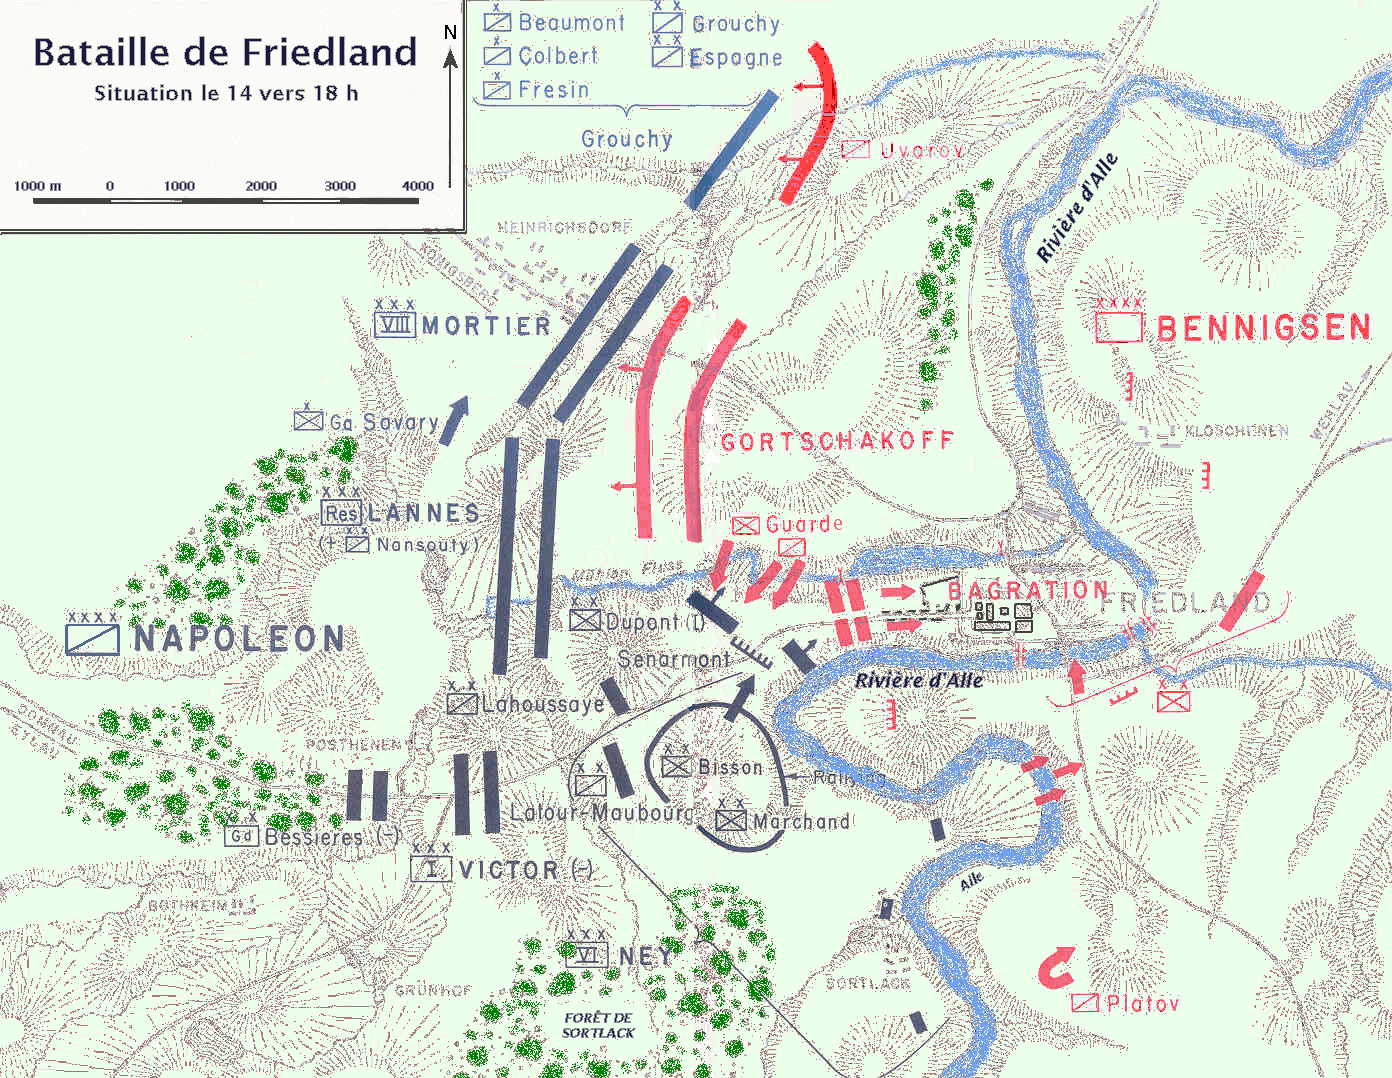 http://upload.wikimedia.org/wikipedia/commons/3/34/Bataille_de_Friedland_Map.png